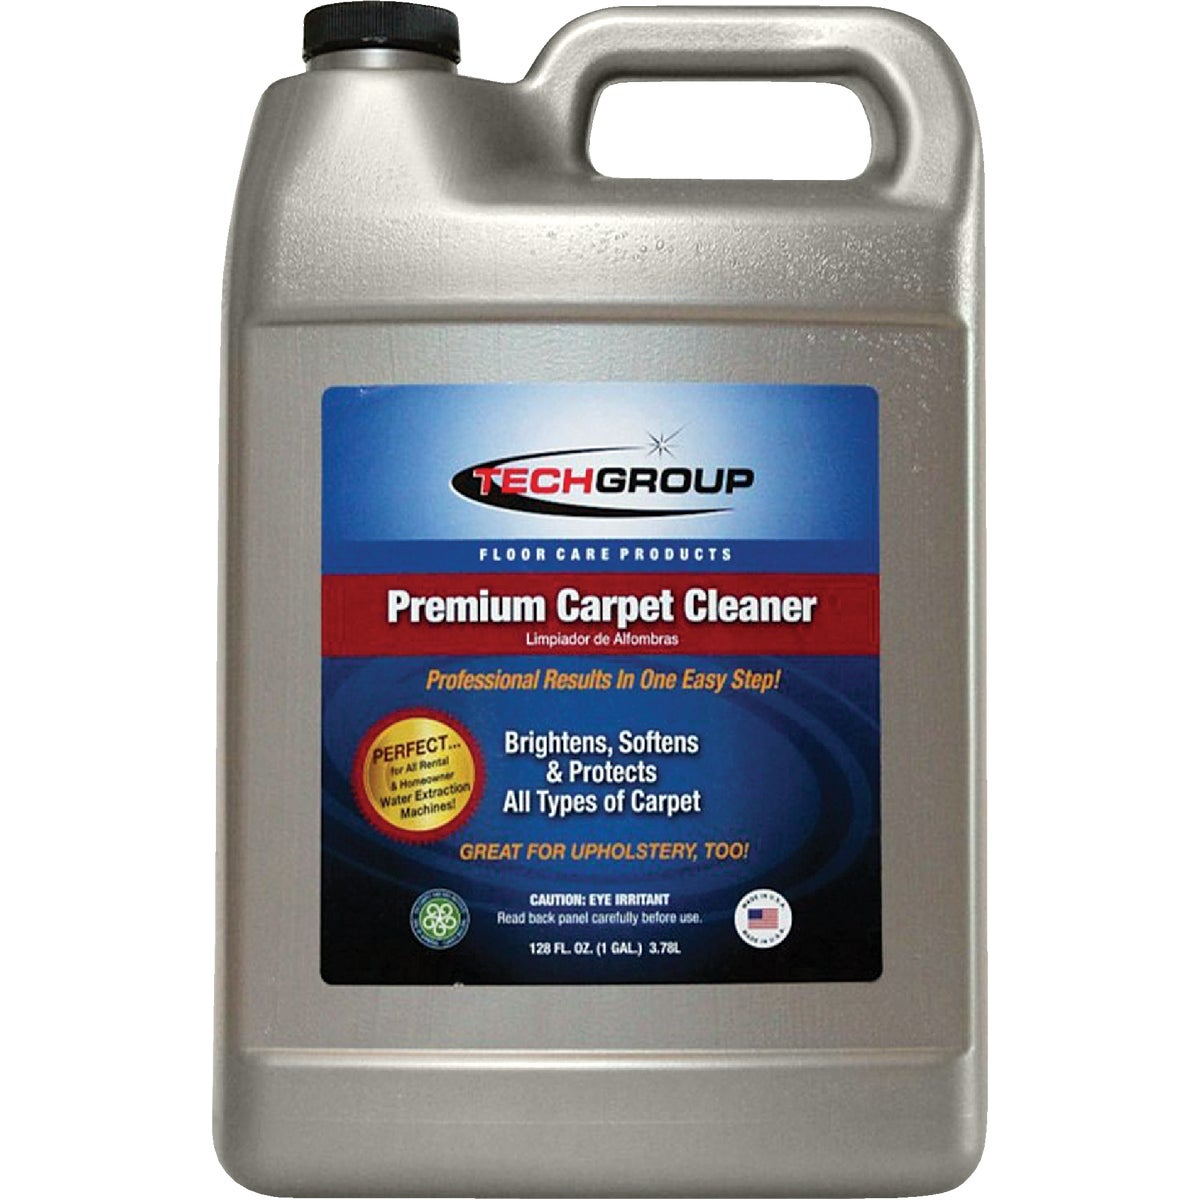 GL PREM CARPET CLEANER - 5467 by Cul Mac Ind